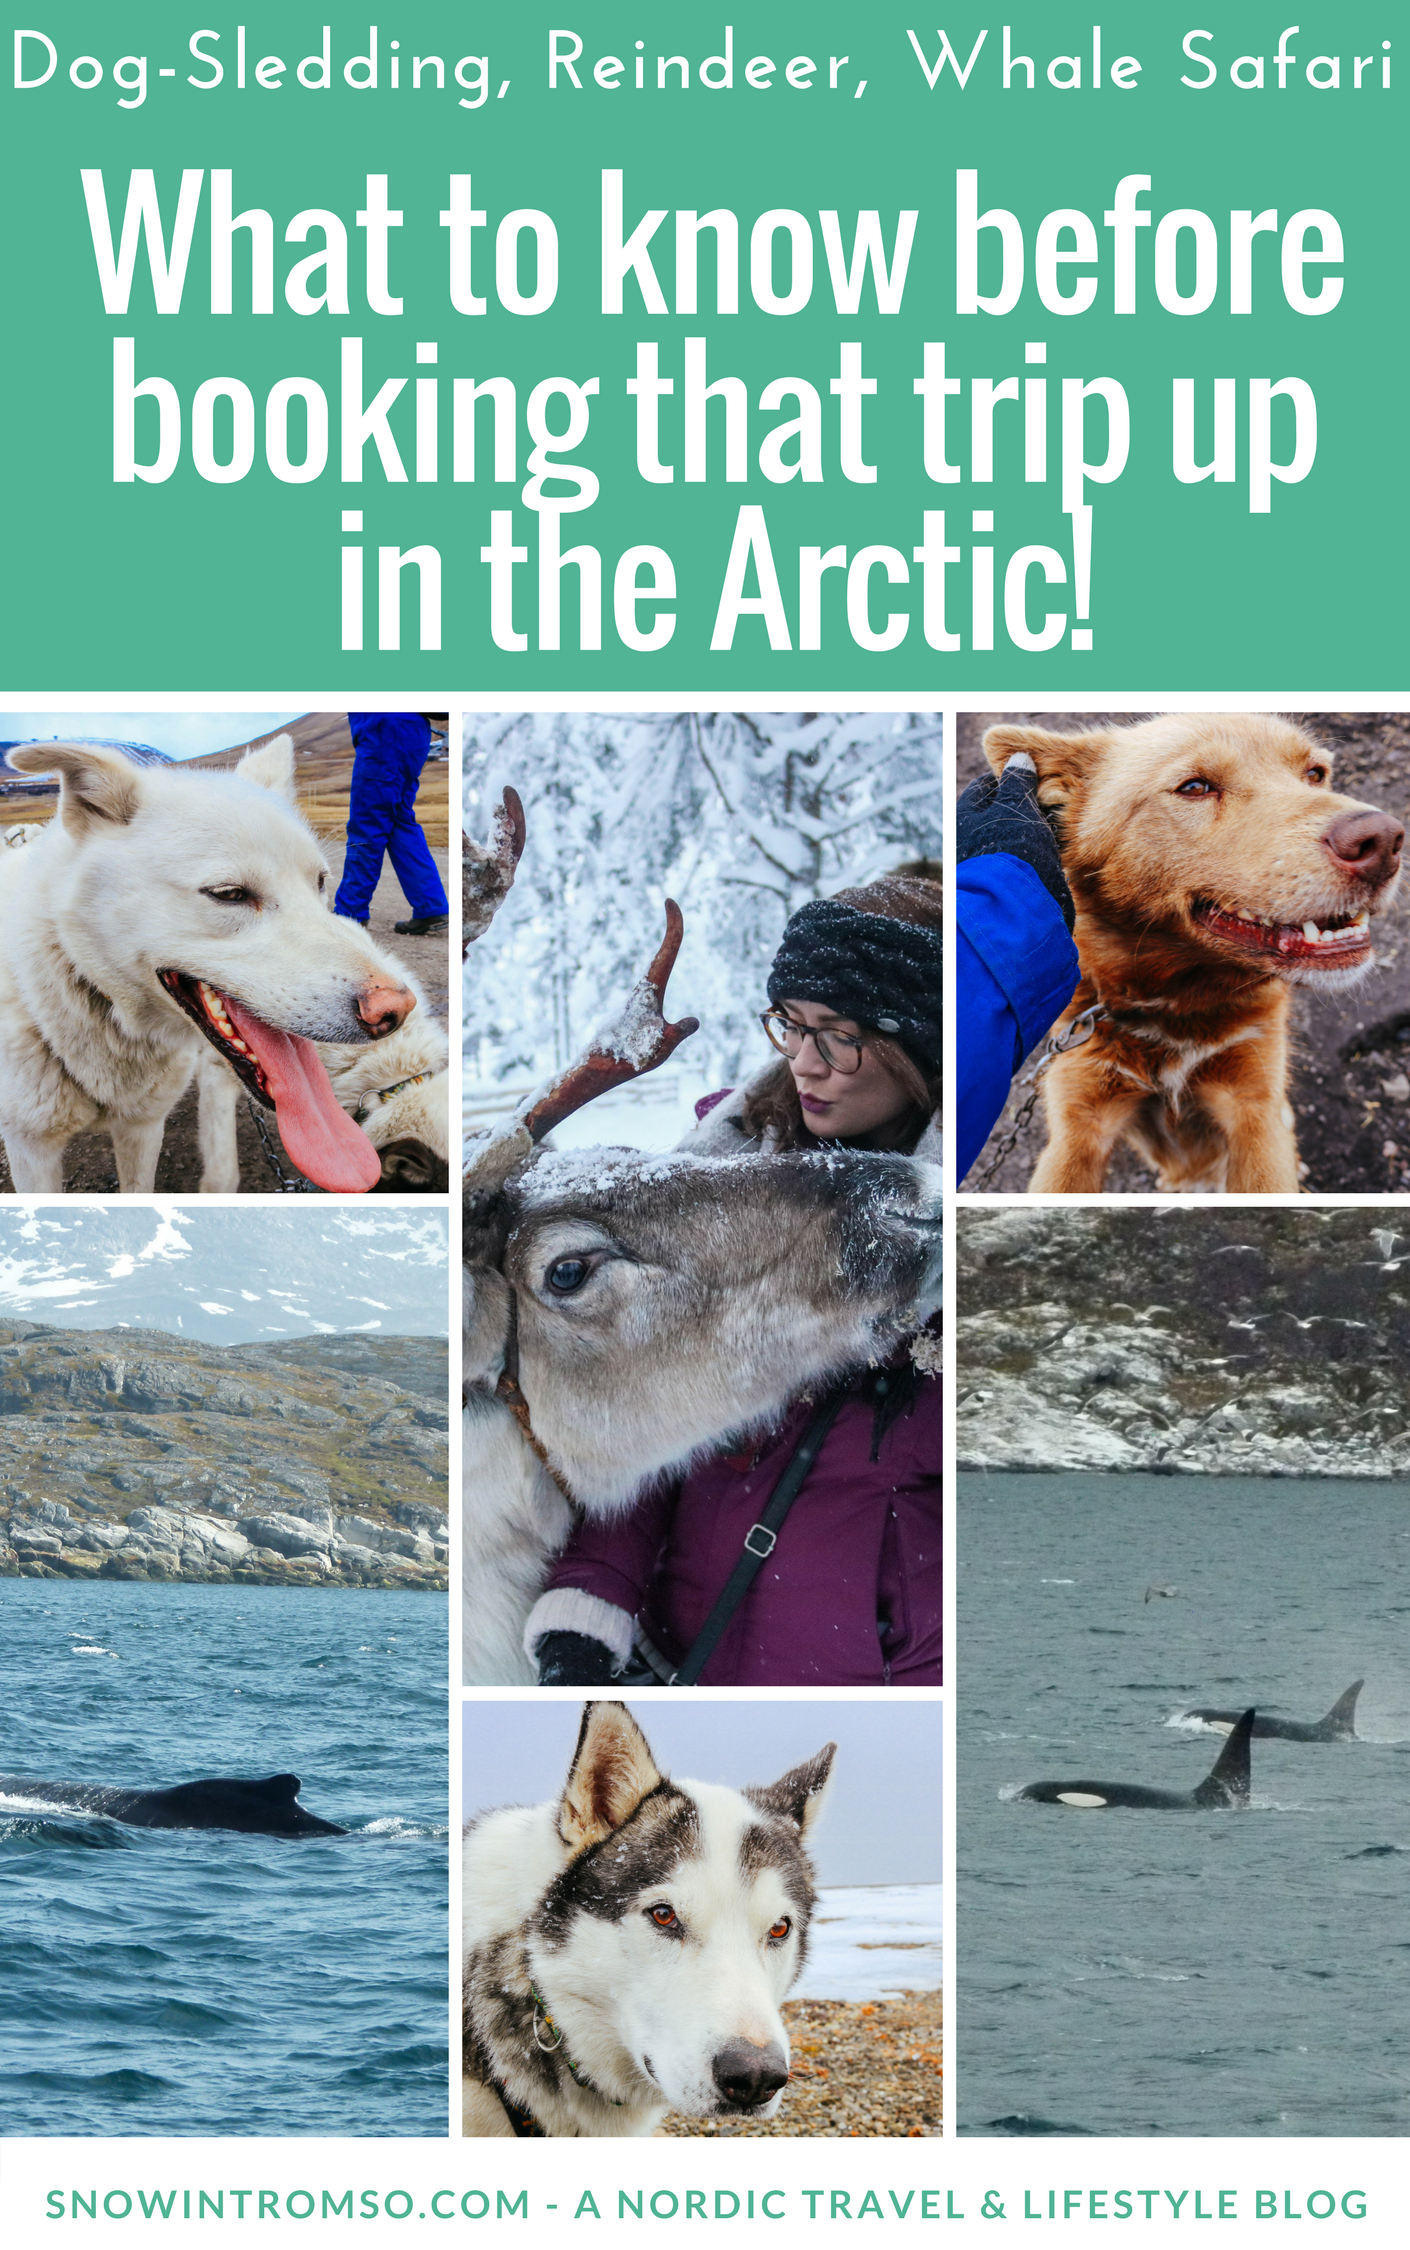 Planning a trip to the Arctic? Here's all you need to consider before booking dog- or reindeer-sledding, or a whale safari up north!